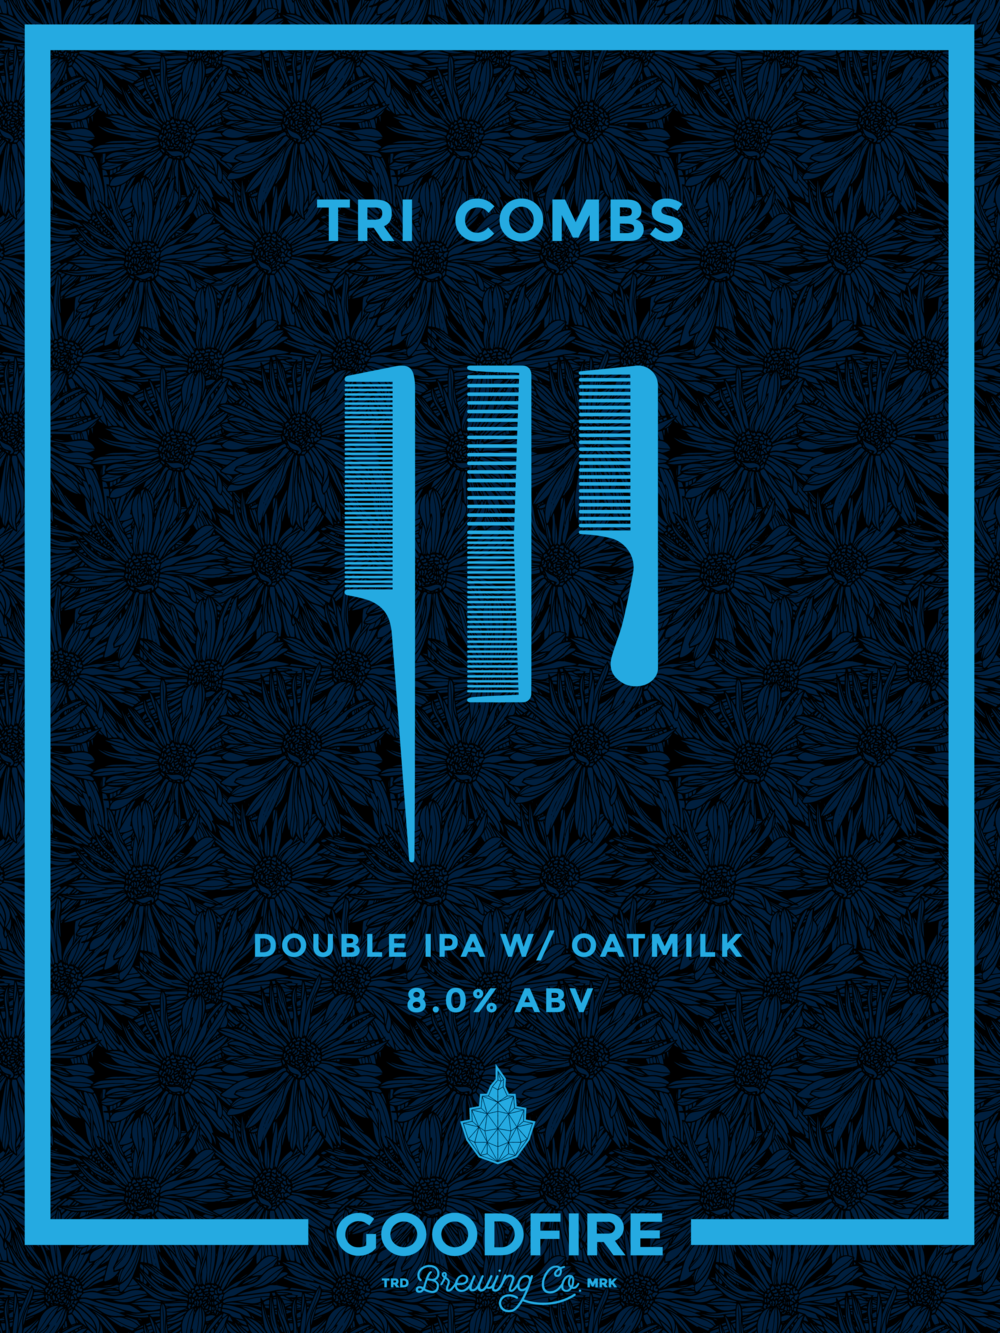 Goodfire Tri Combs Poster.png